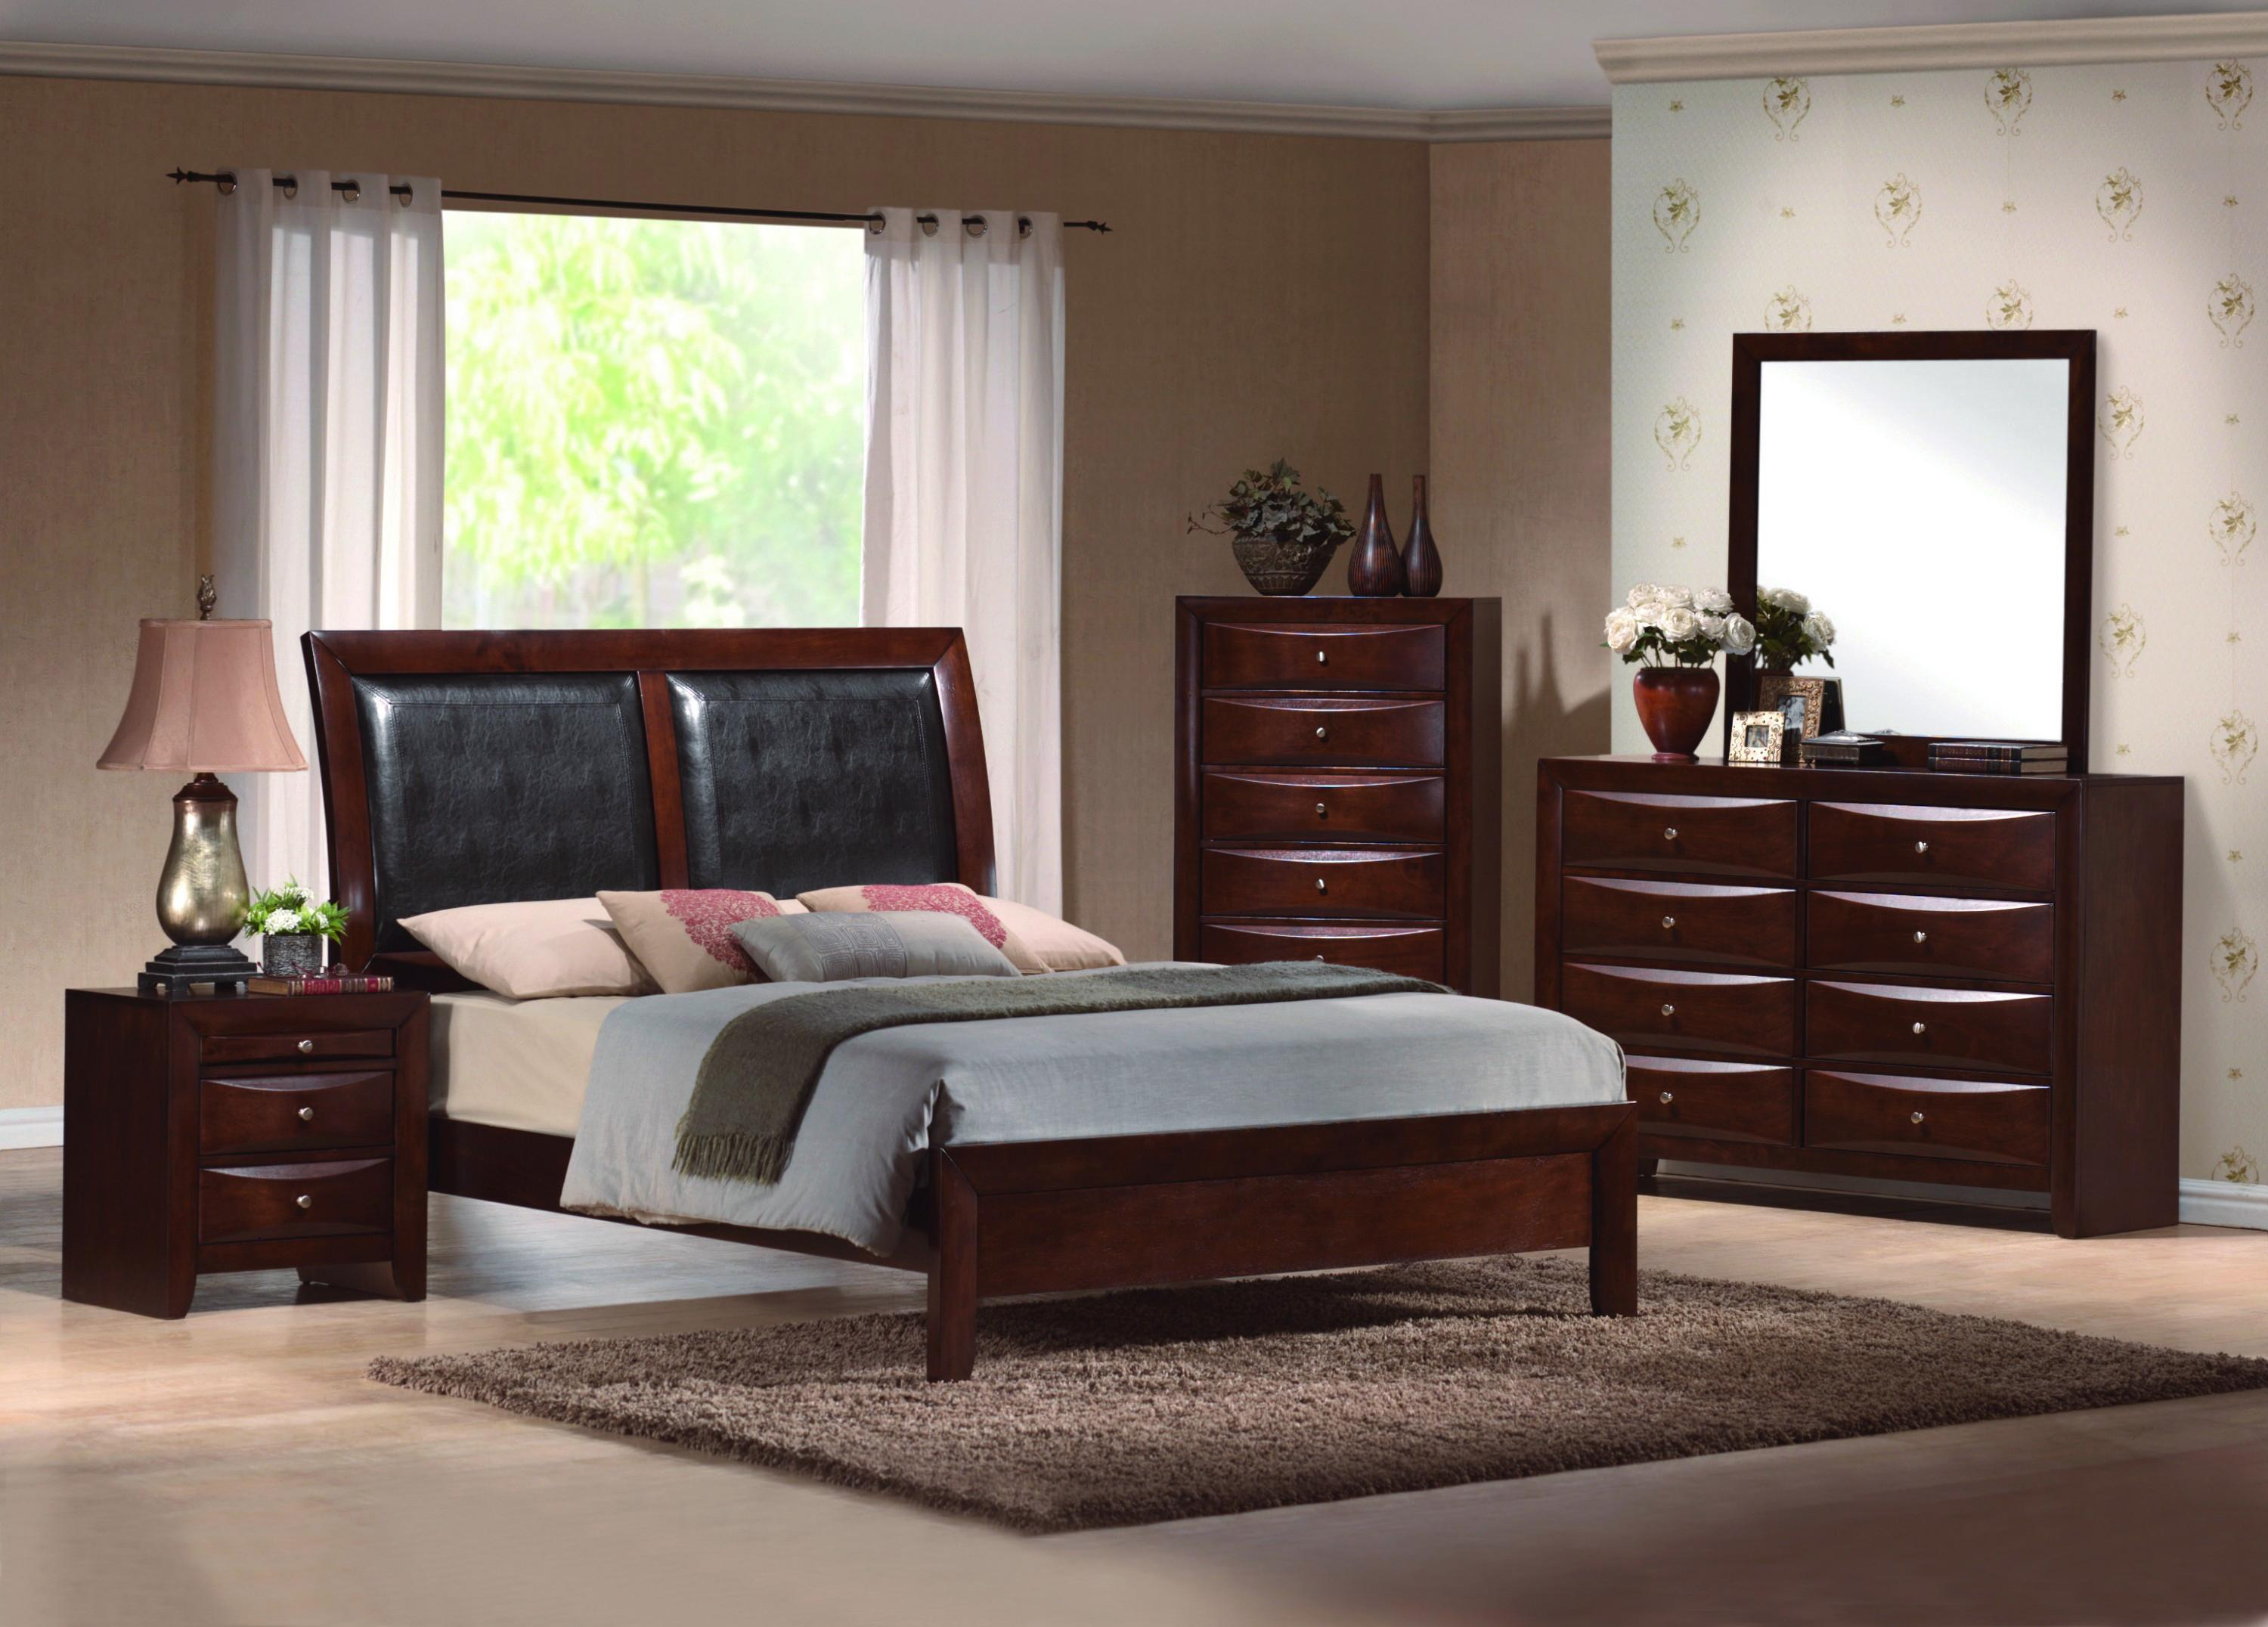 Crown Mark Emily King Bedroom Group - Item Number: B4200 K Bedroom Group 2